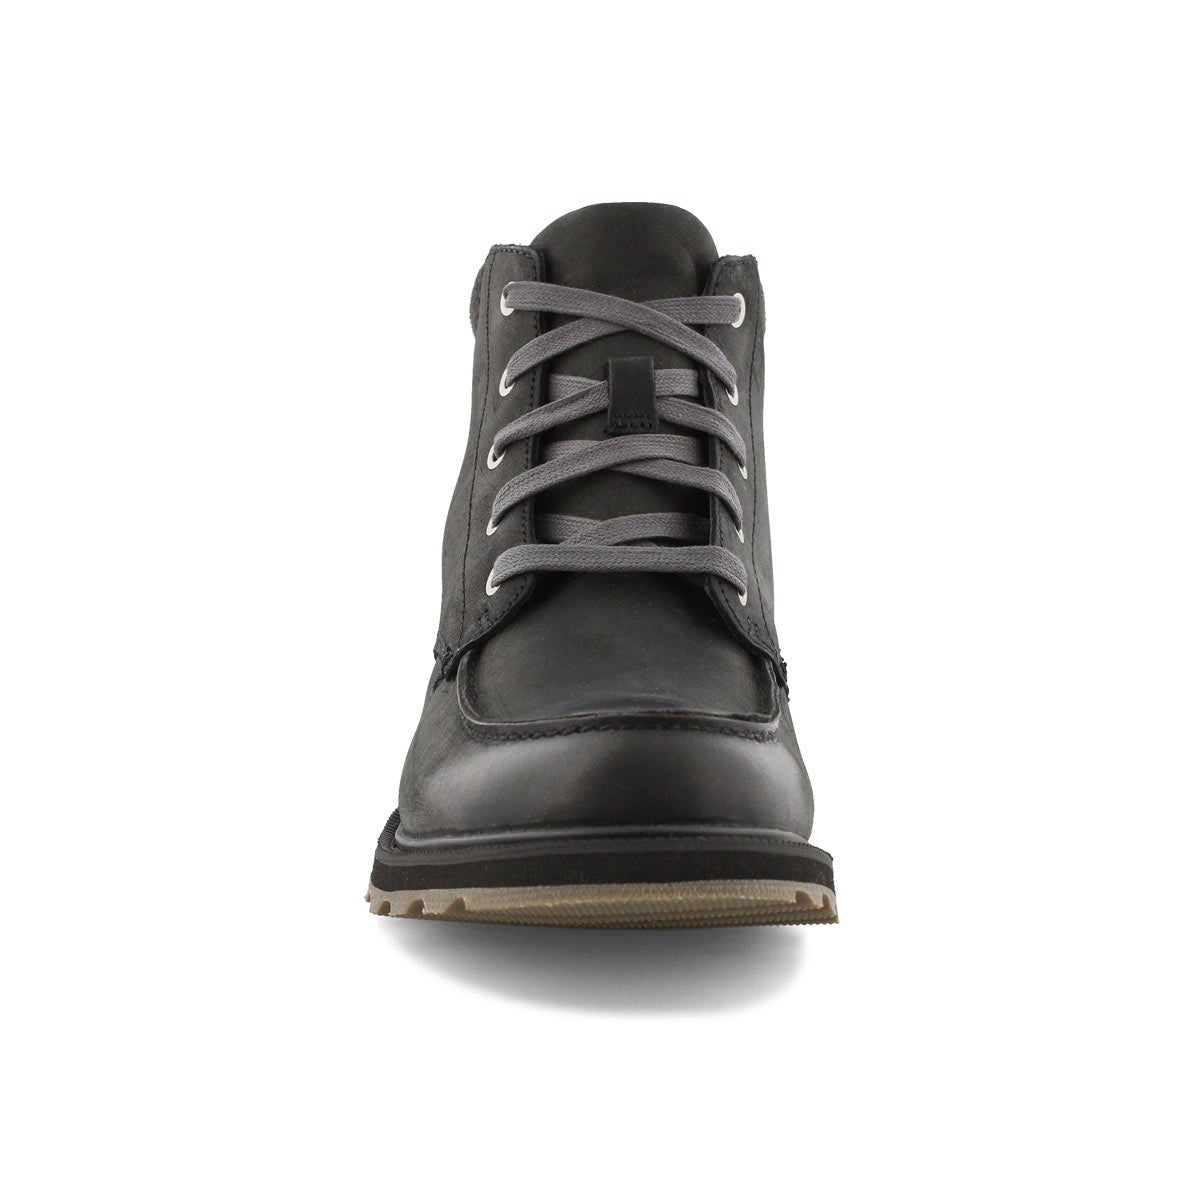 Mns Madson Moc Toe blk/drk gry wtpf boot